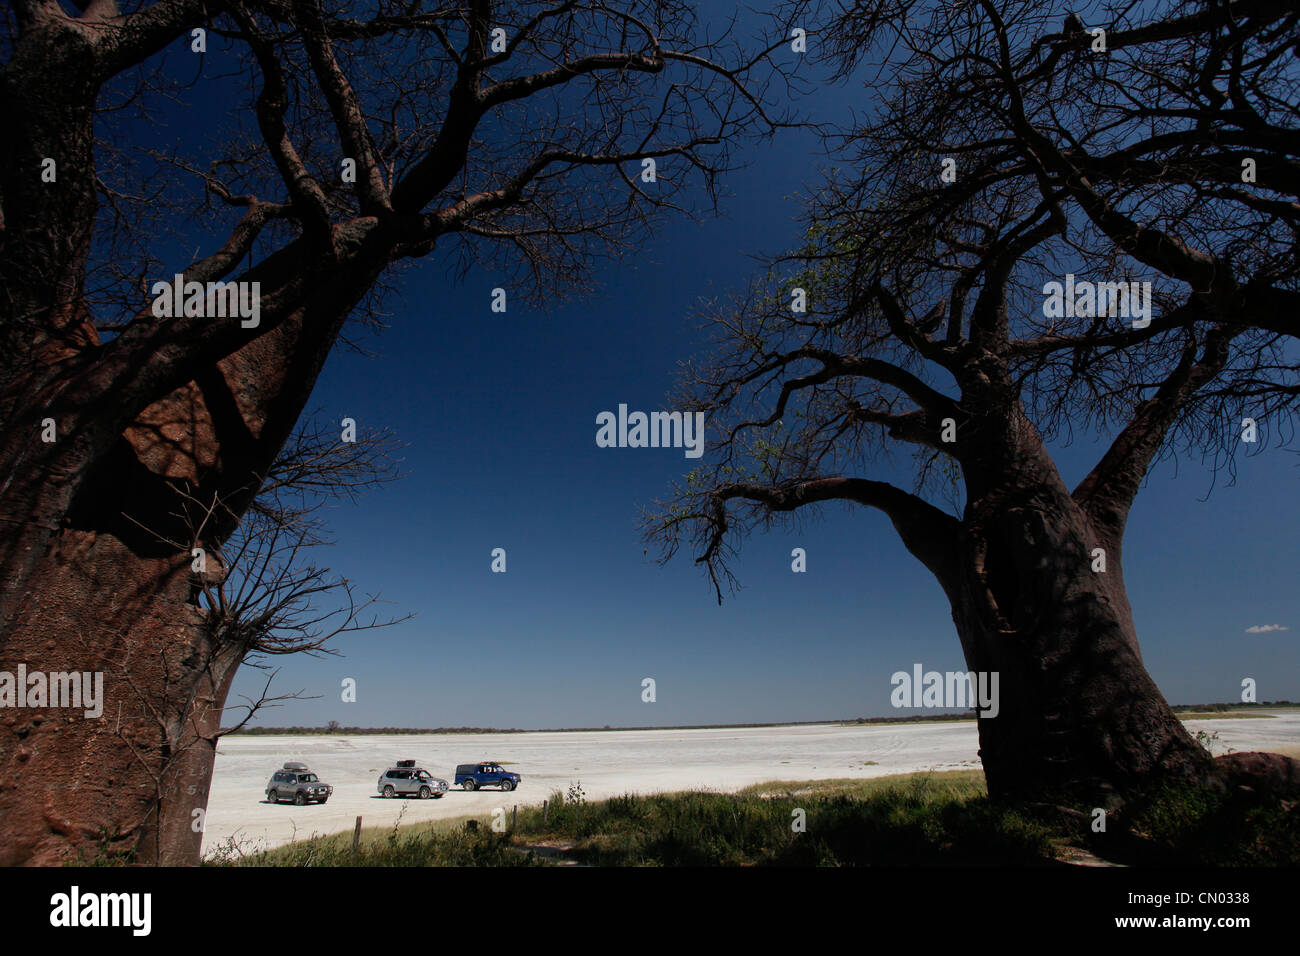 4X4 explorers park up by Baines baobabs in Nxai Pan National Park, Botswana. - Stock Image